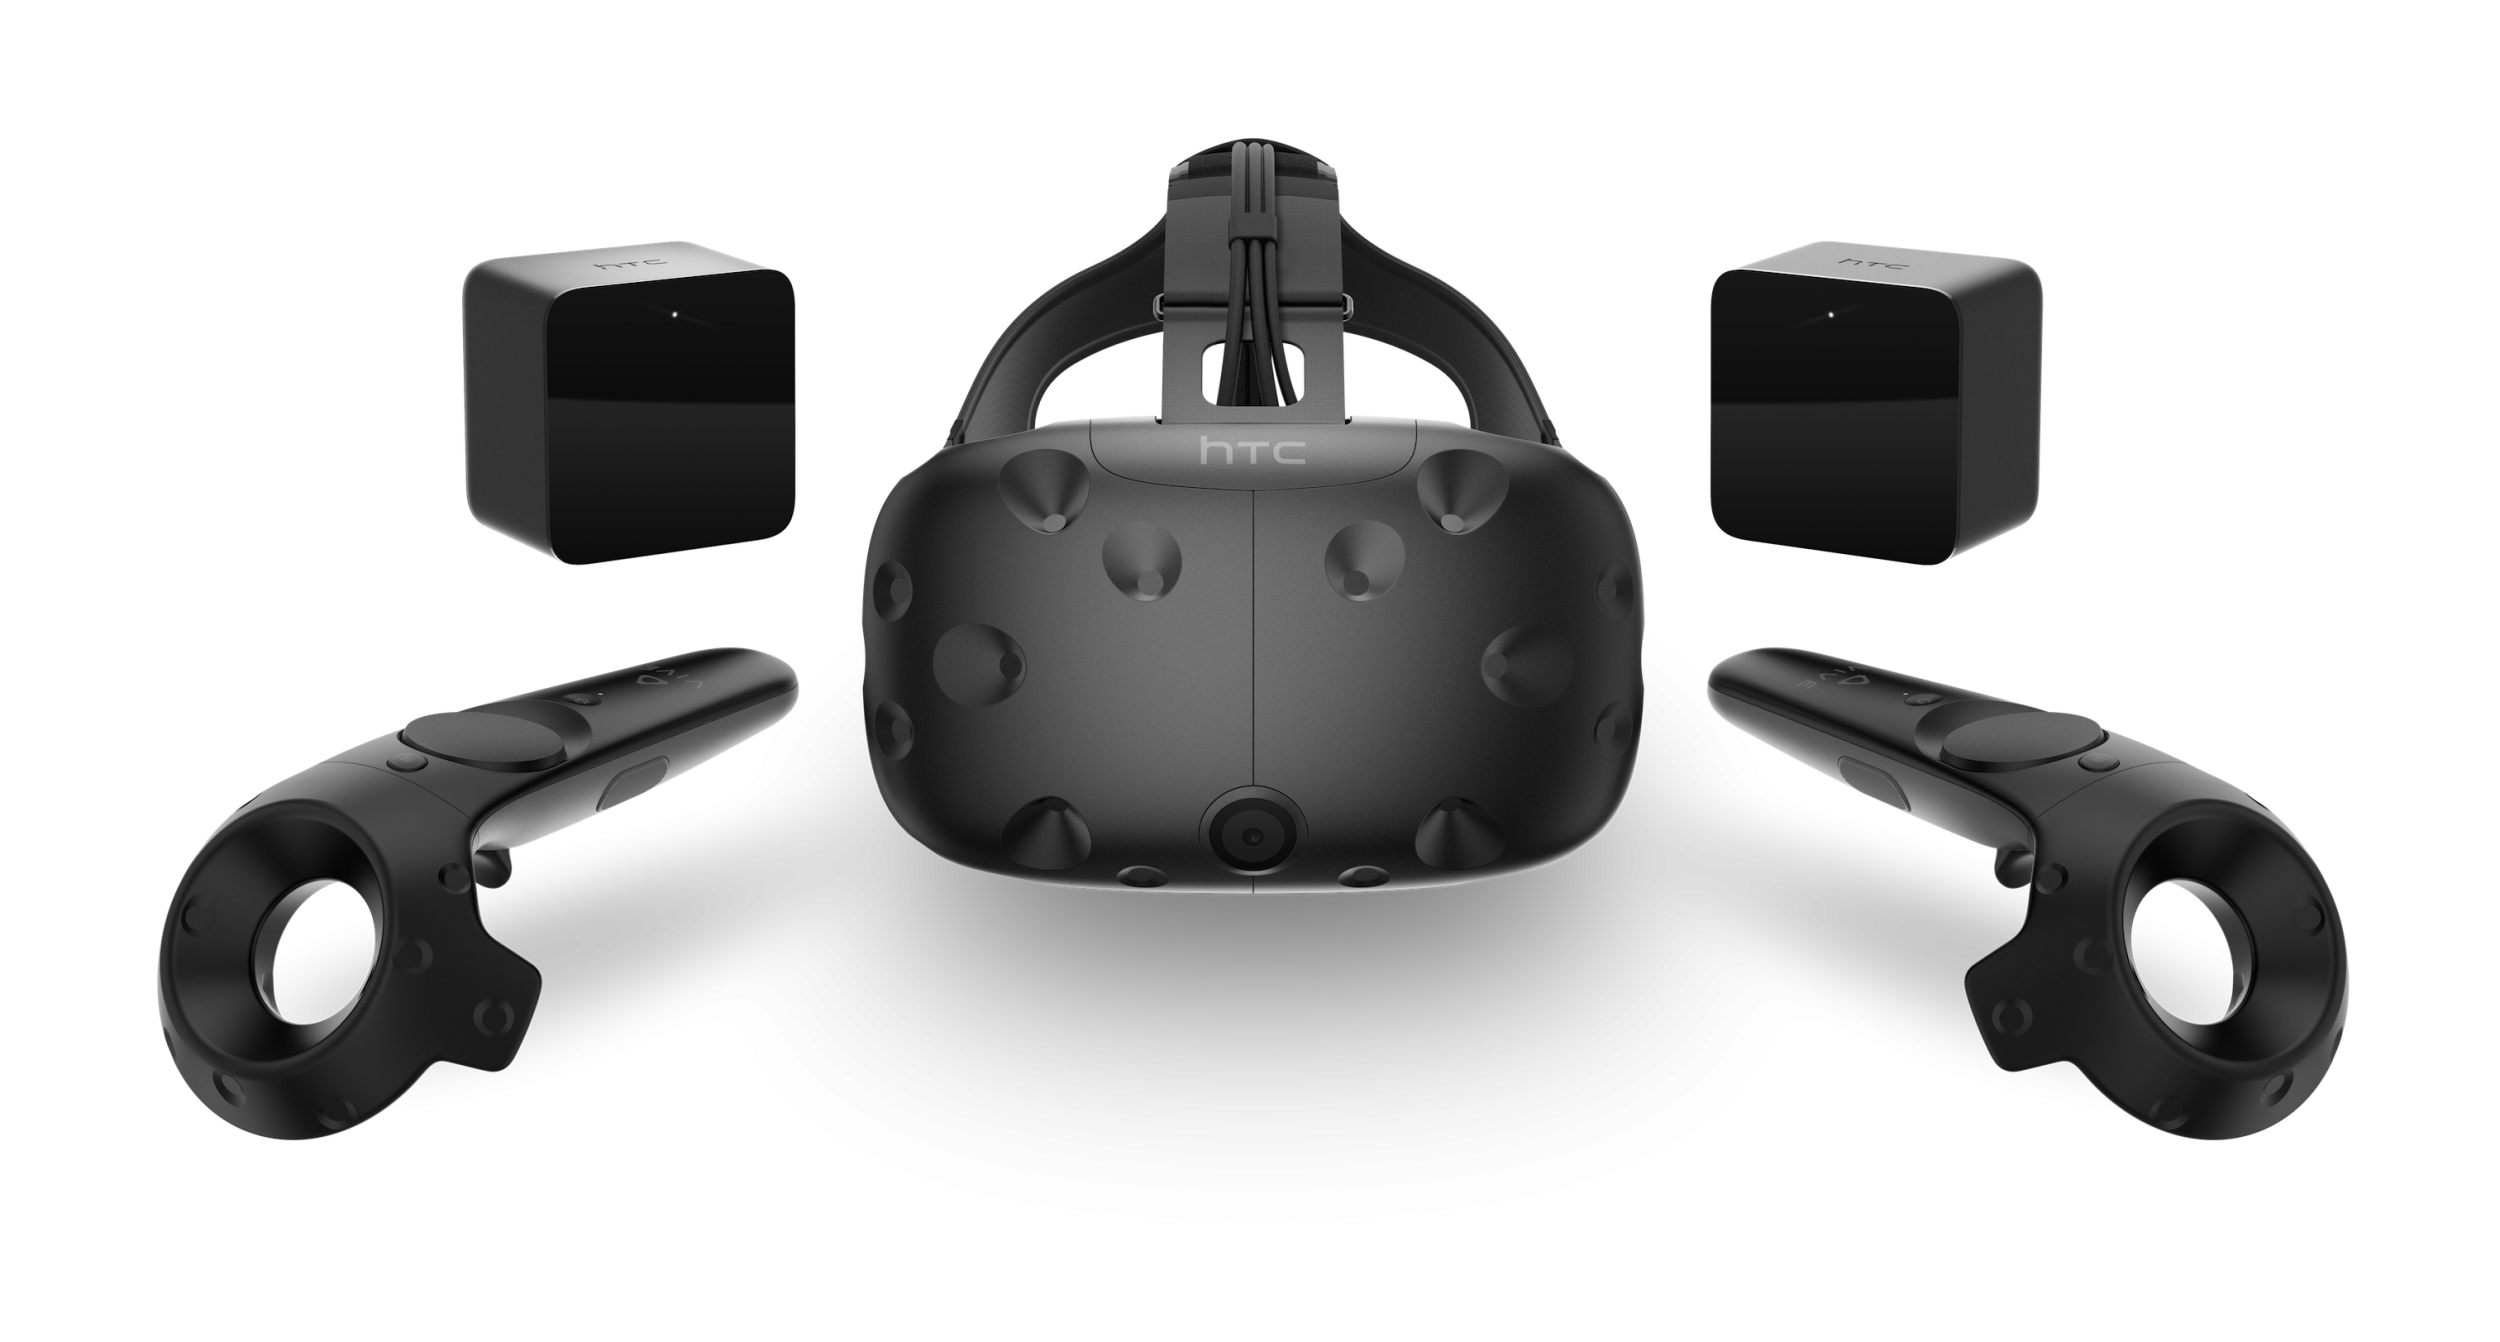 HTC Vive headset with controllers